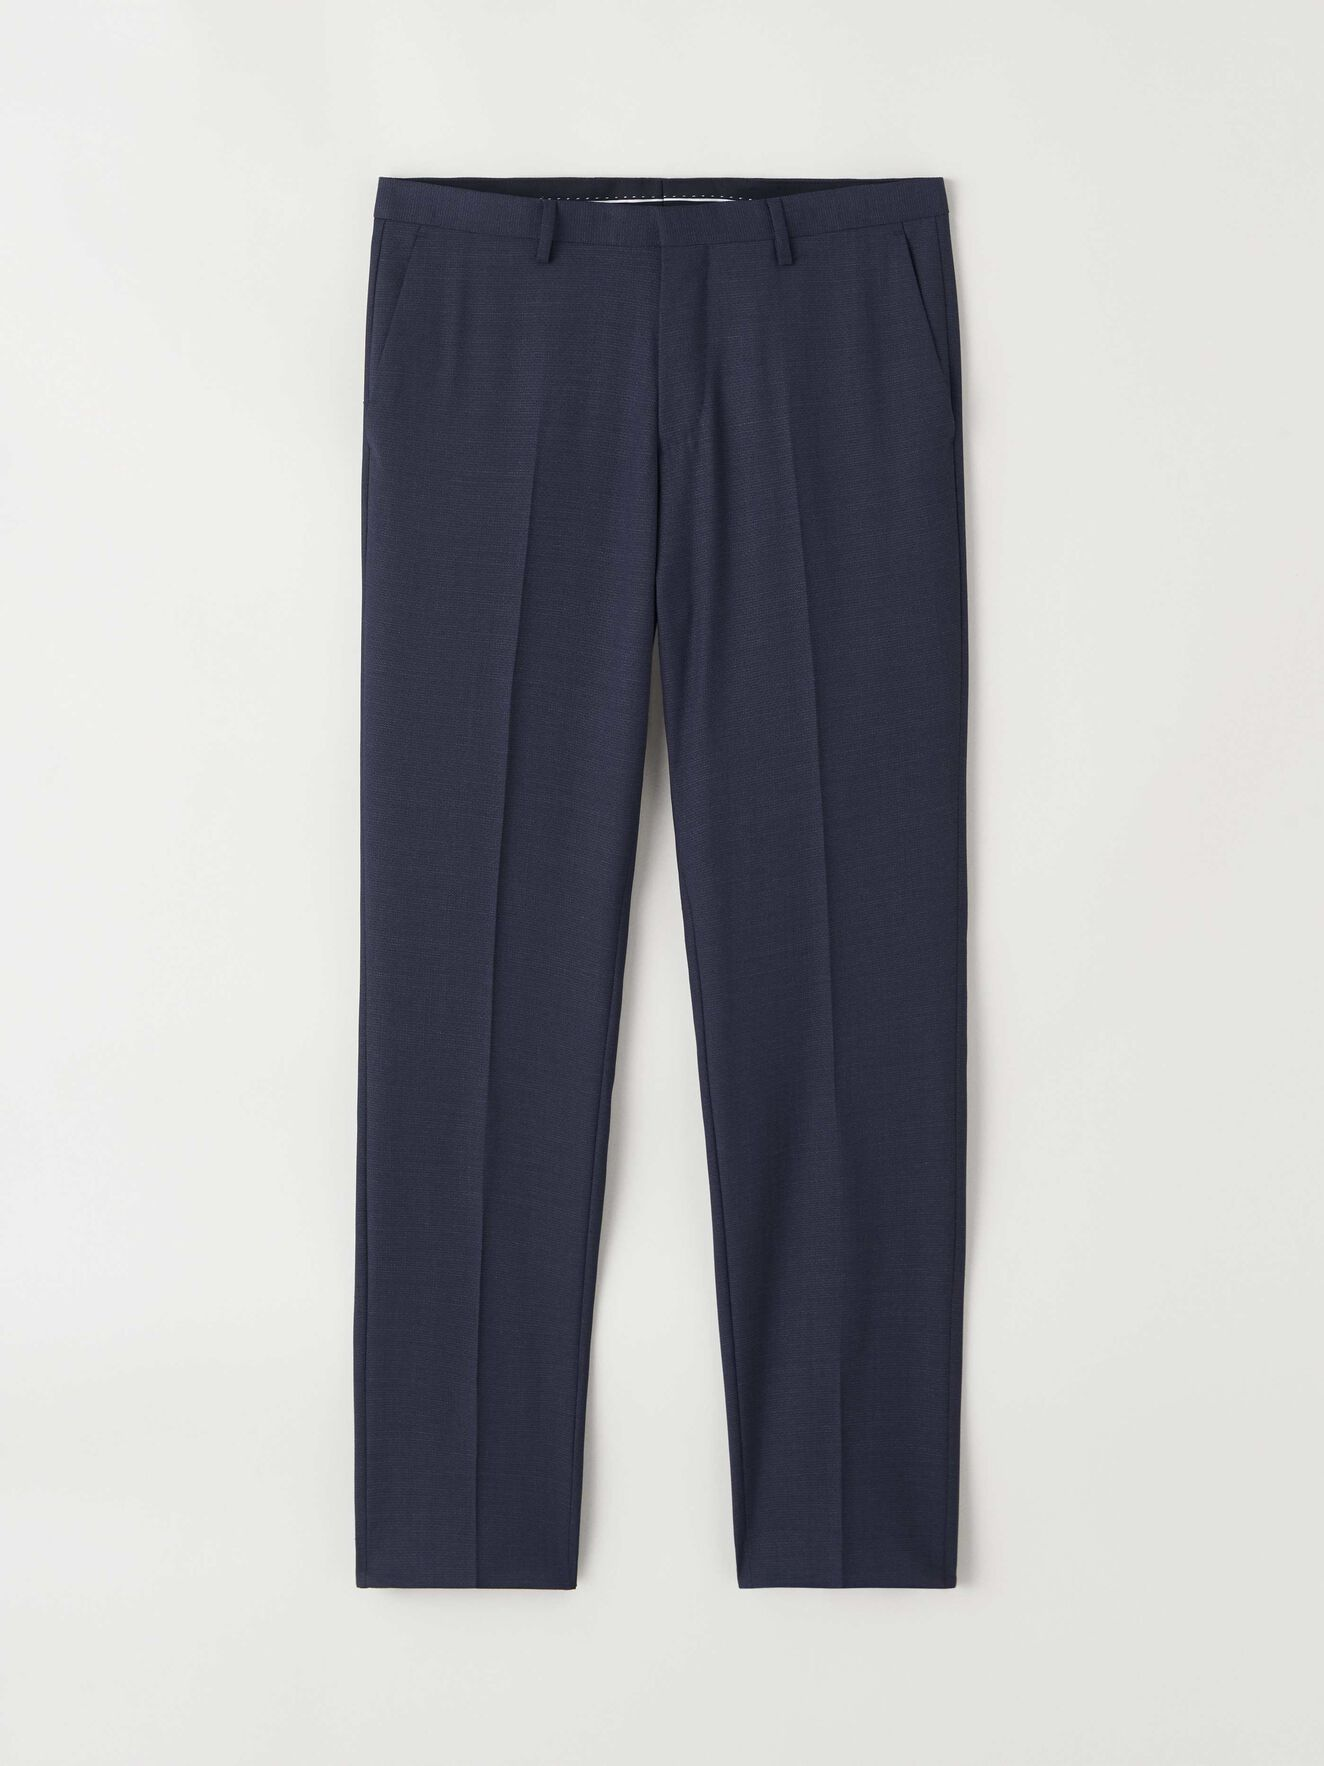 042b3a9d9 Trousers - Shop Tiger of Sweden men s trousers online